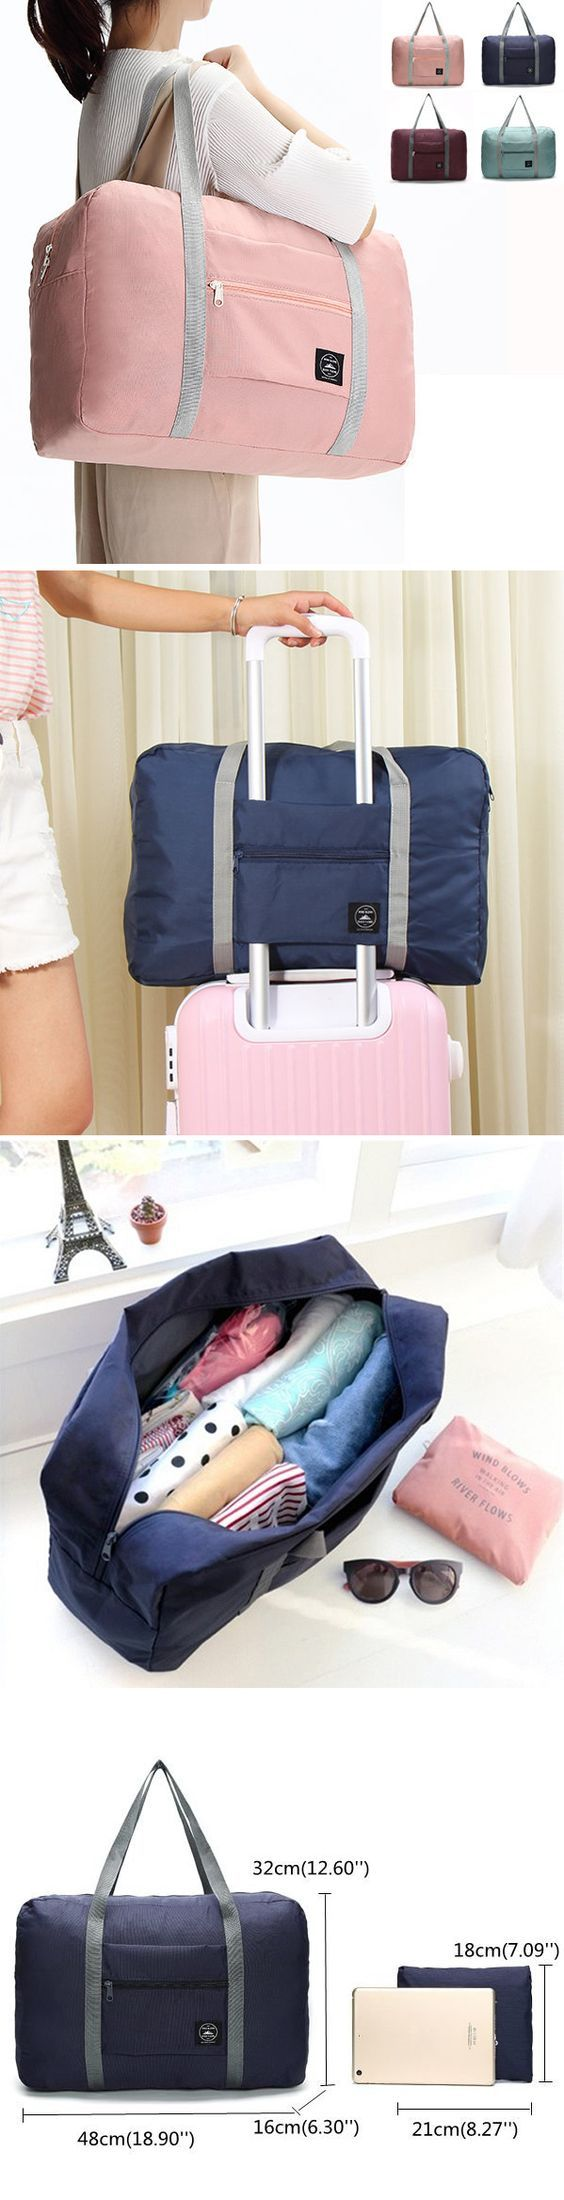 US$9.99 Women Men Folding Waterproof Luggage Bags Unisex Fitness Bag Outdoor Travel Bags http://feedproxy.google.com/fashiongobags